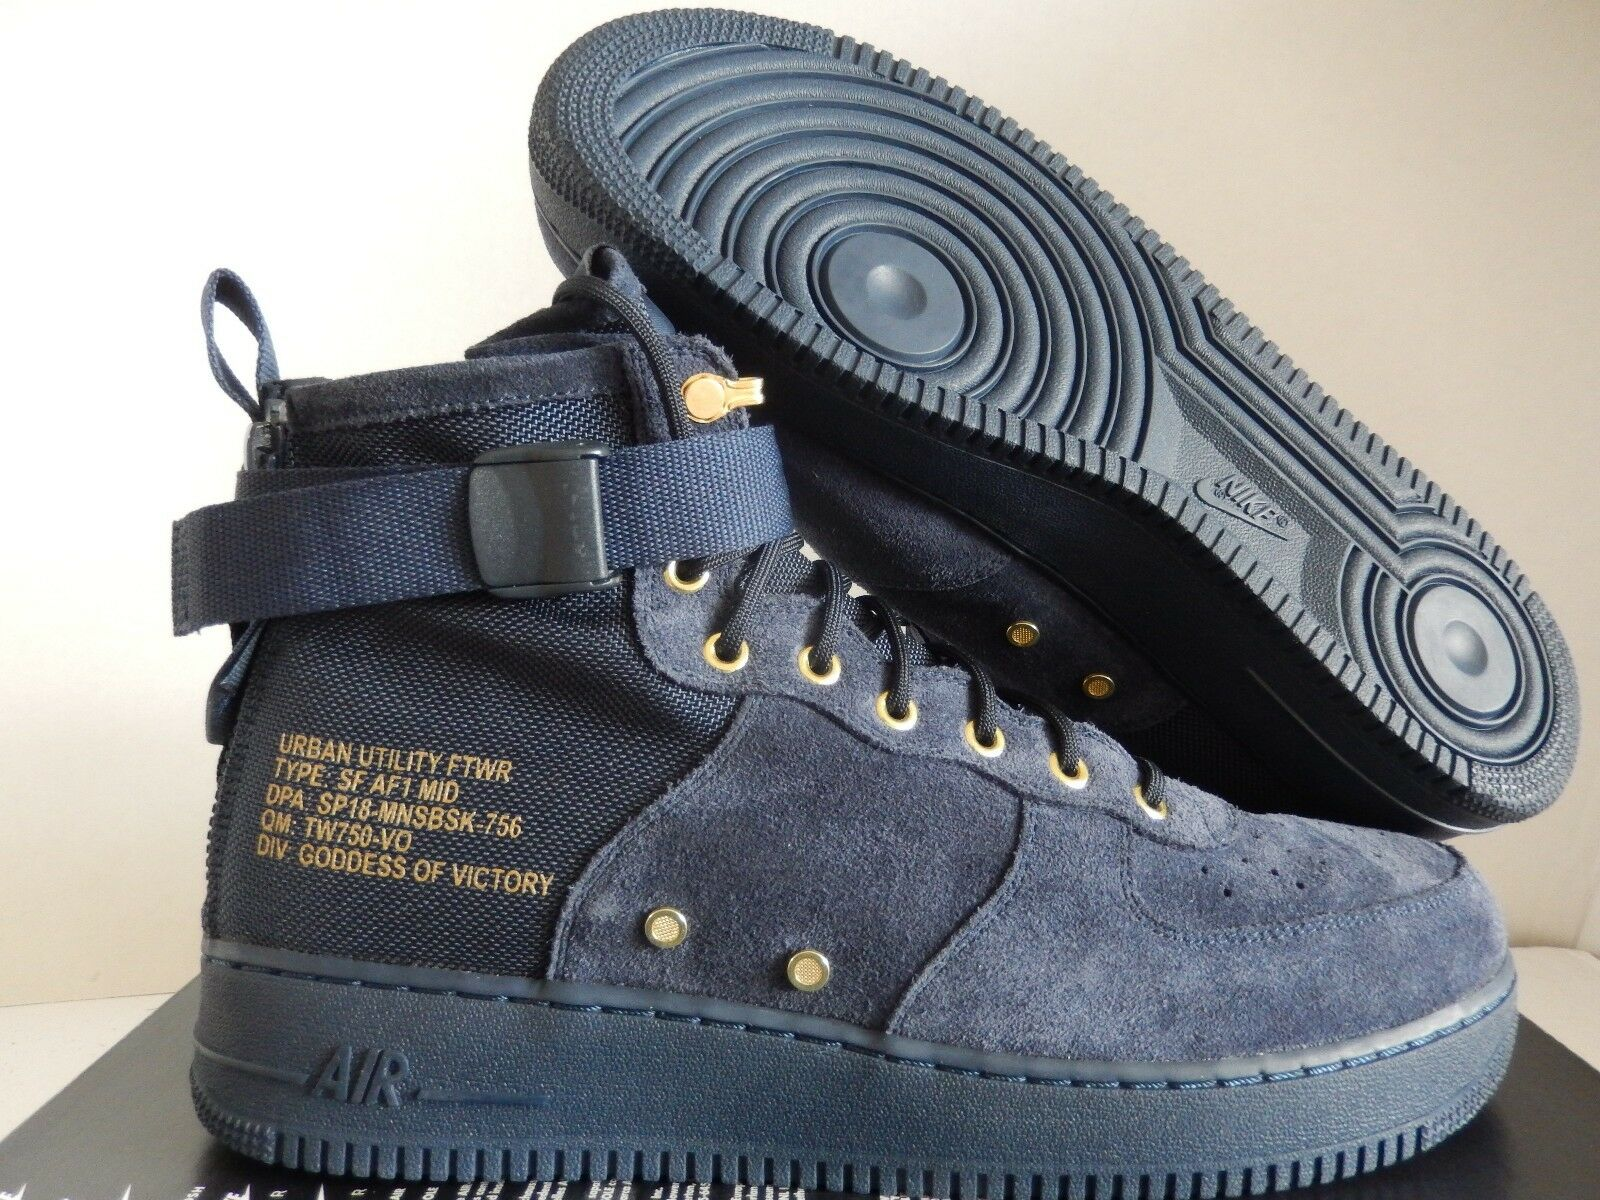 NIKE AIR FORCE 1 SF AF1 MID SPECIAL FIELD OBSIDIAN NAVY blueE SZ 13 [917753-400]